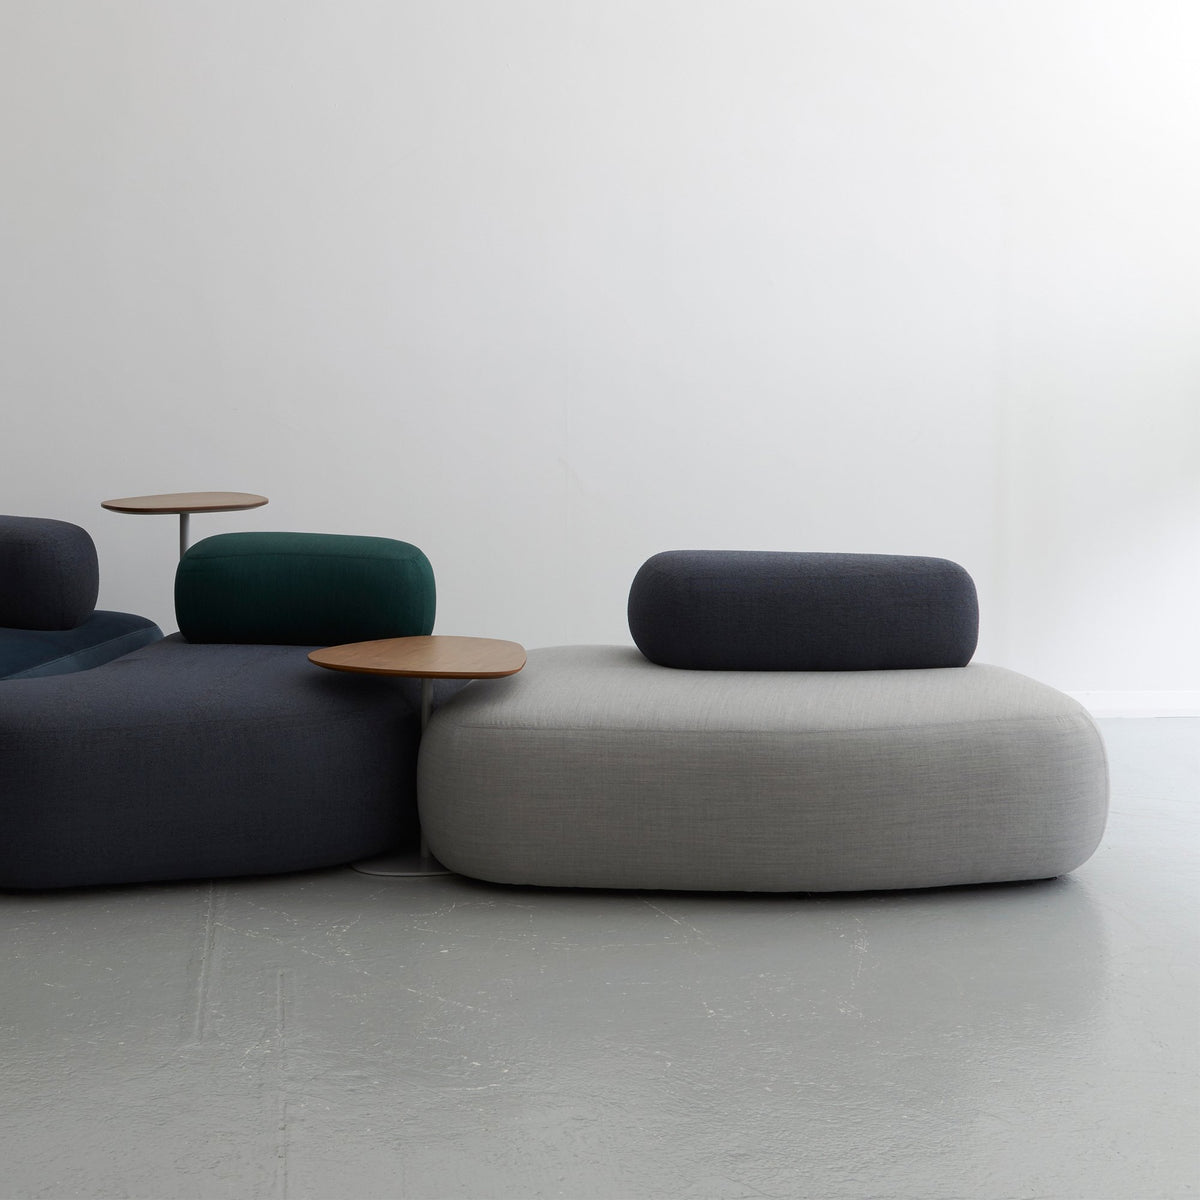 Hitch Mylius Office HM63b Pebble Seating